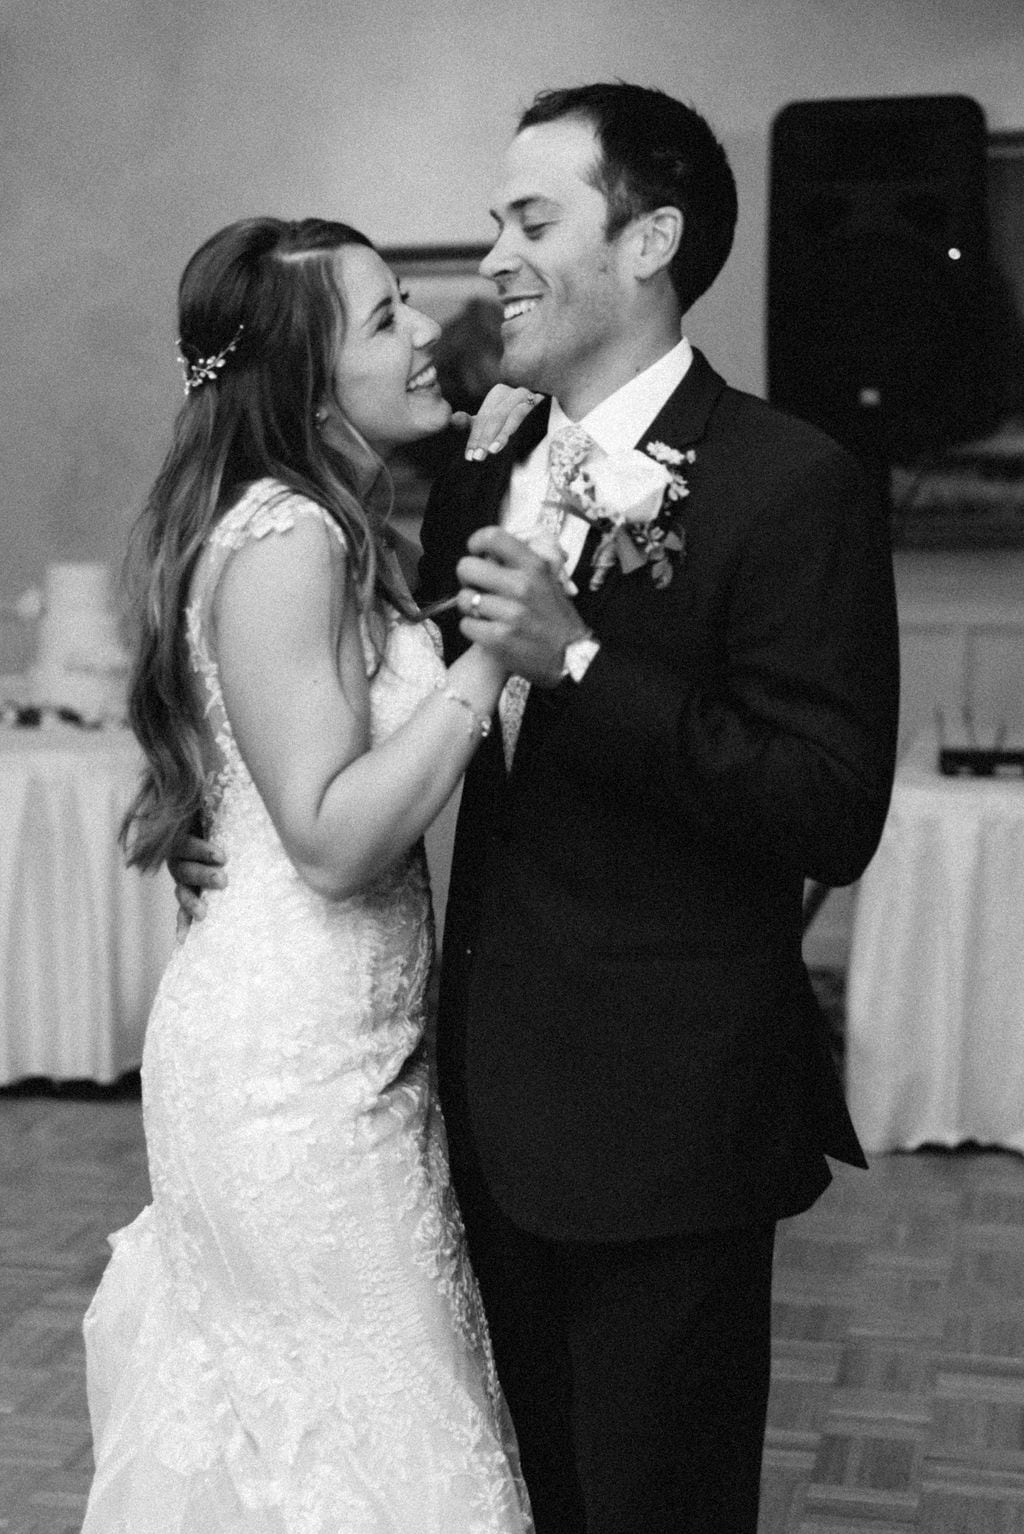 Bride and Groom First Dance at Cheyenne Mountain Country Club Reception